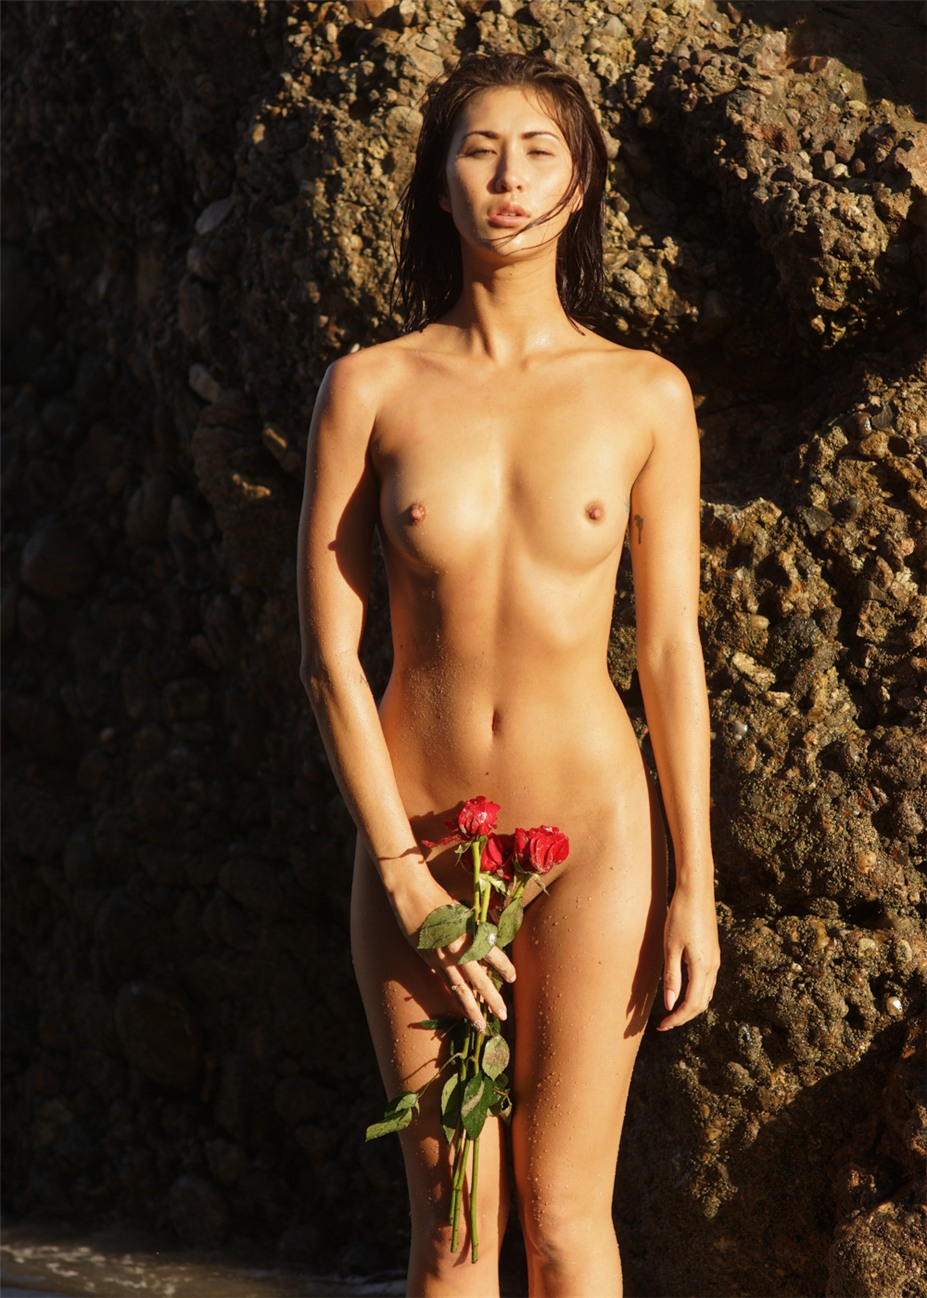 Kiss for a Rose / Shei Phan nude by Kenn Perry